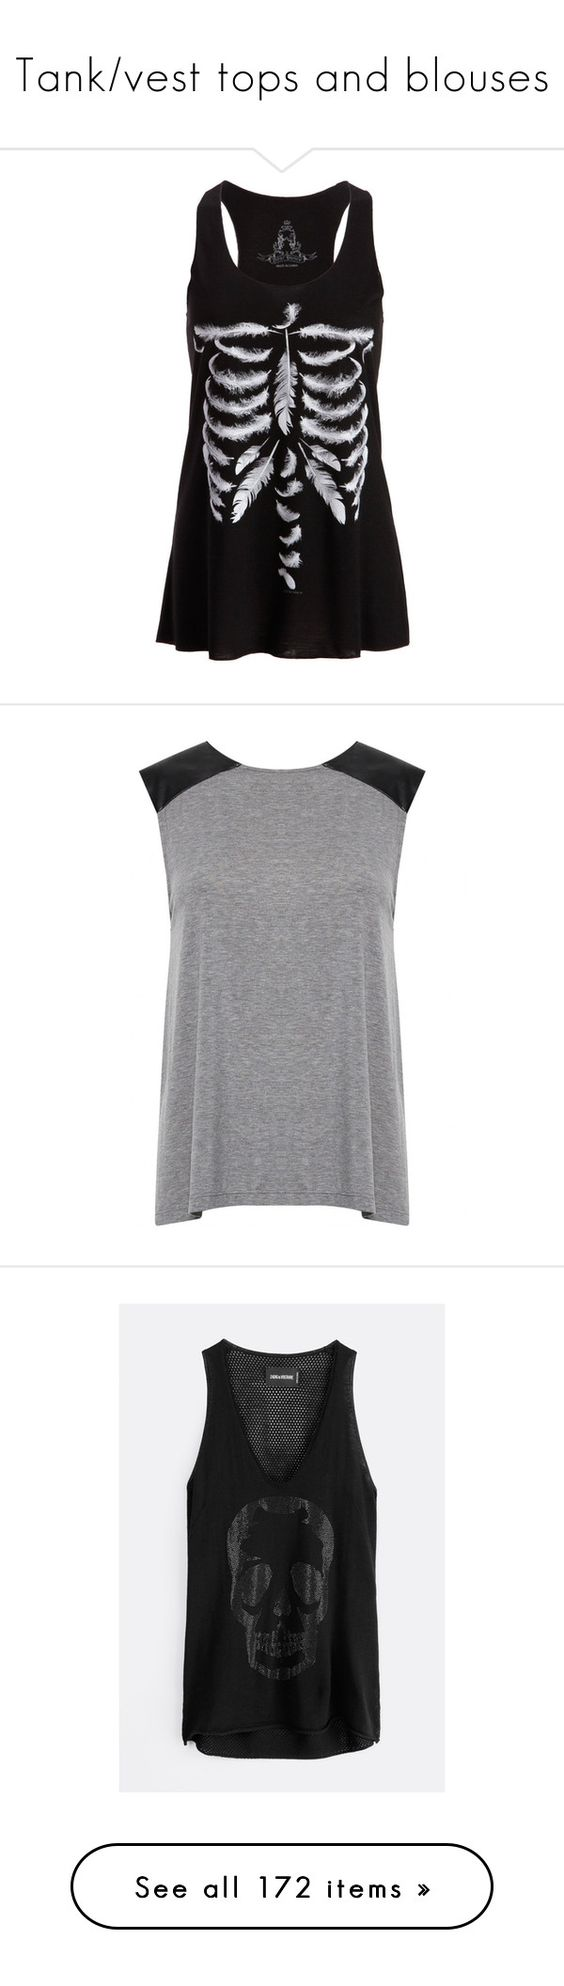 """""""Tank/vest tops and blouses"""" by musicmelody1 on Polyvore featuring tops, shirts, tank tops, tanks, cotton tank tops, urban shirts, sleeveless tank, sleeve shirt, sleeve less shirts and black"""